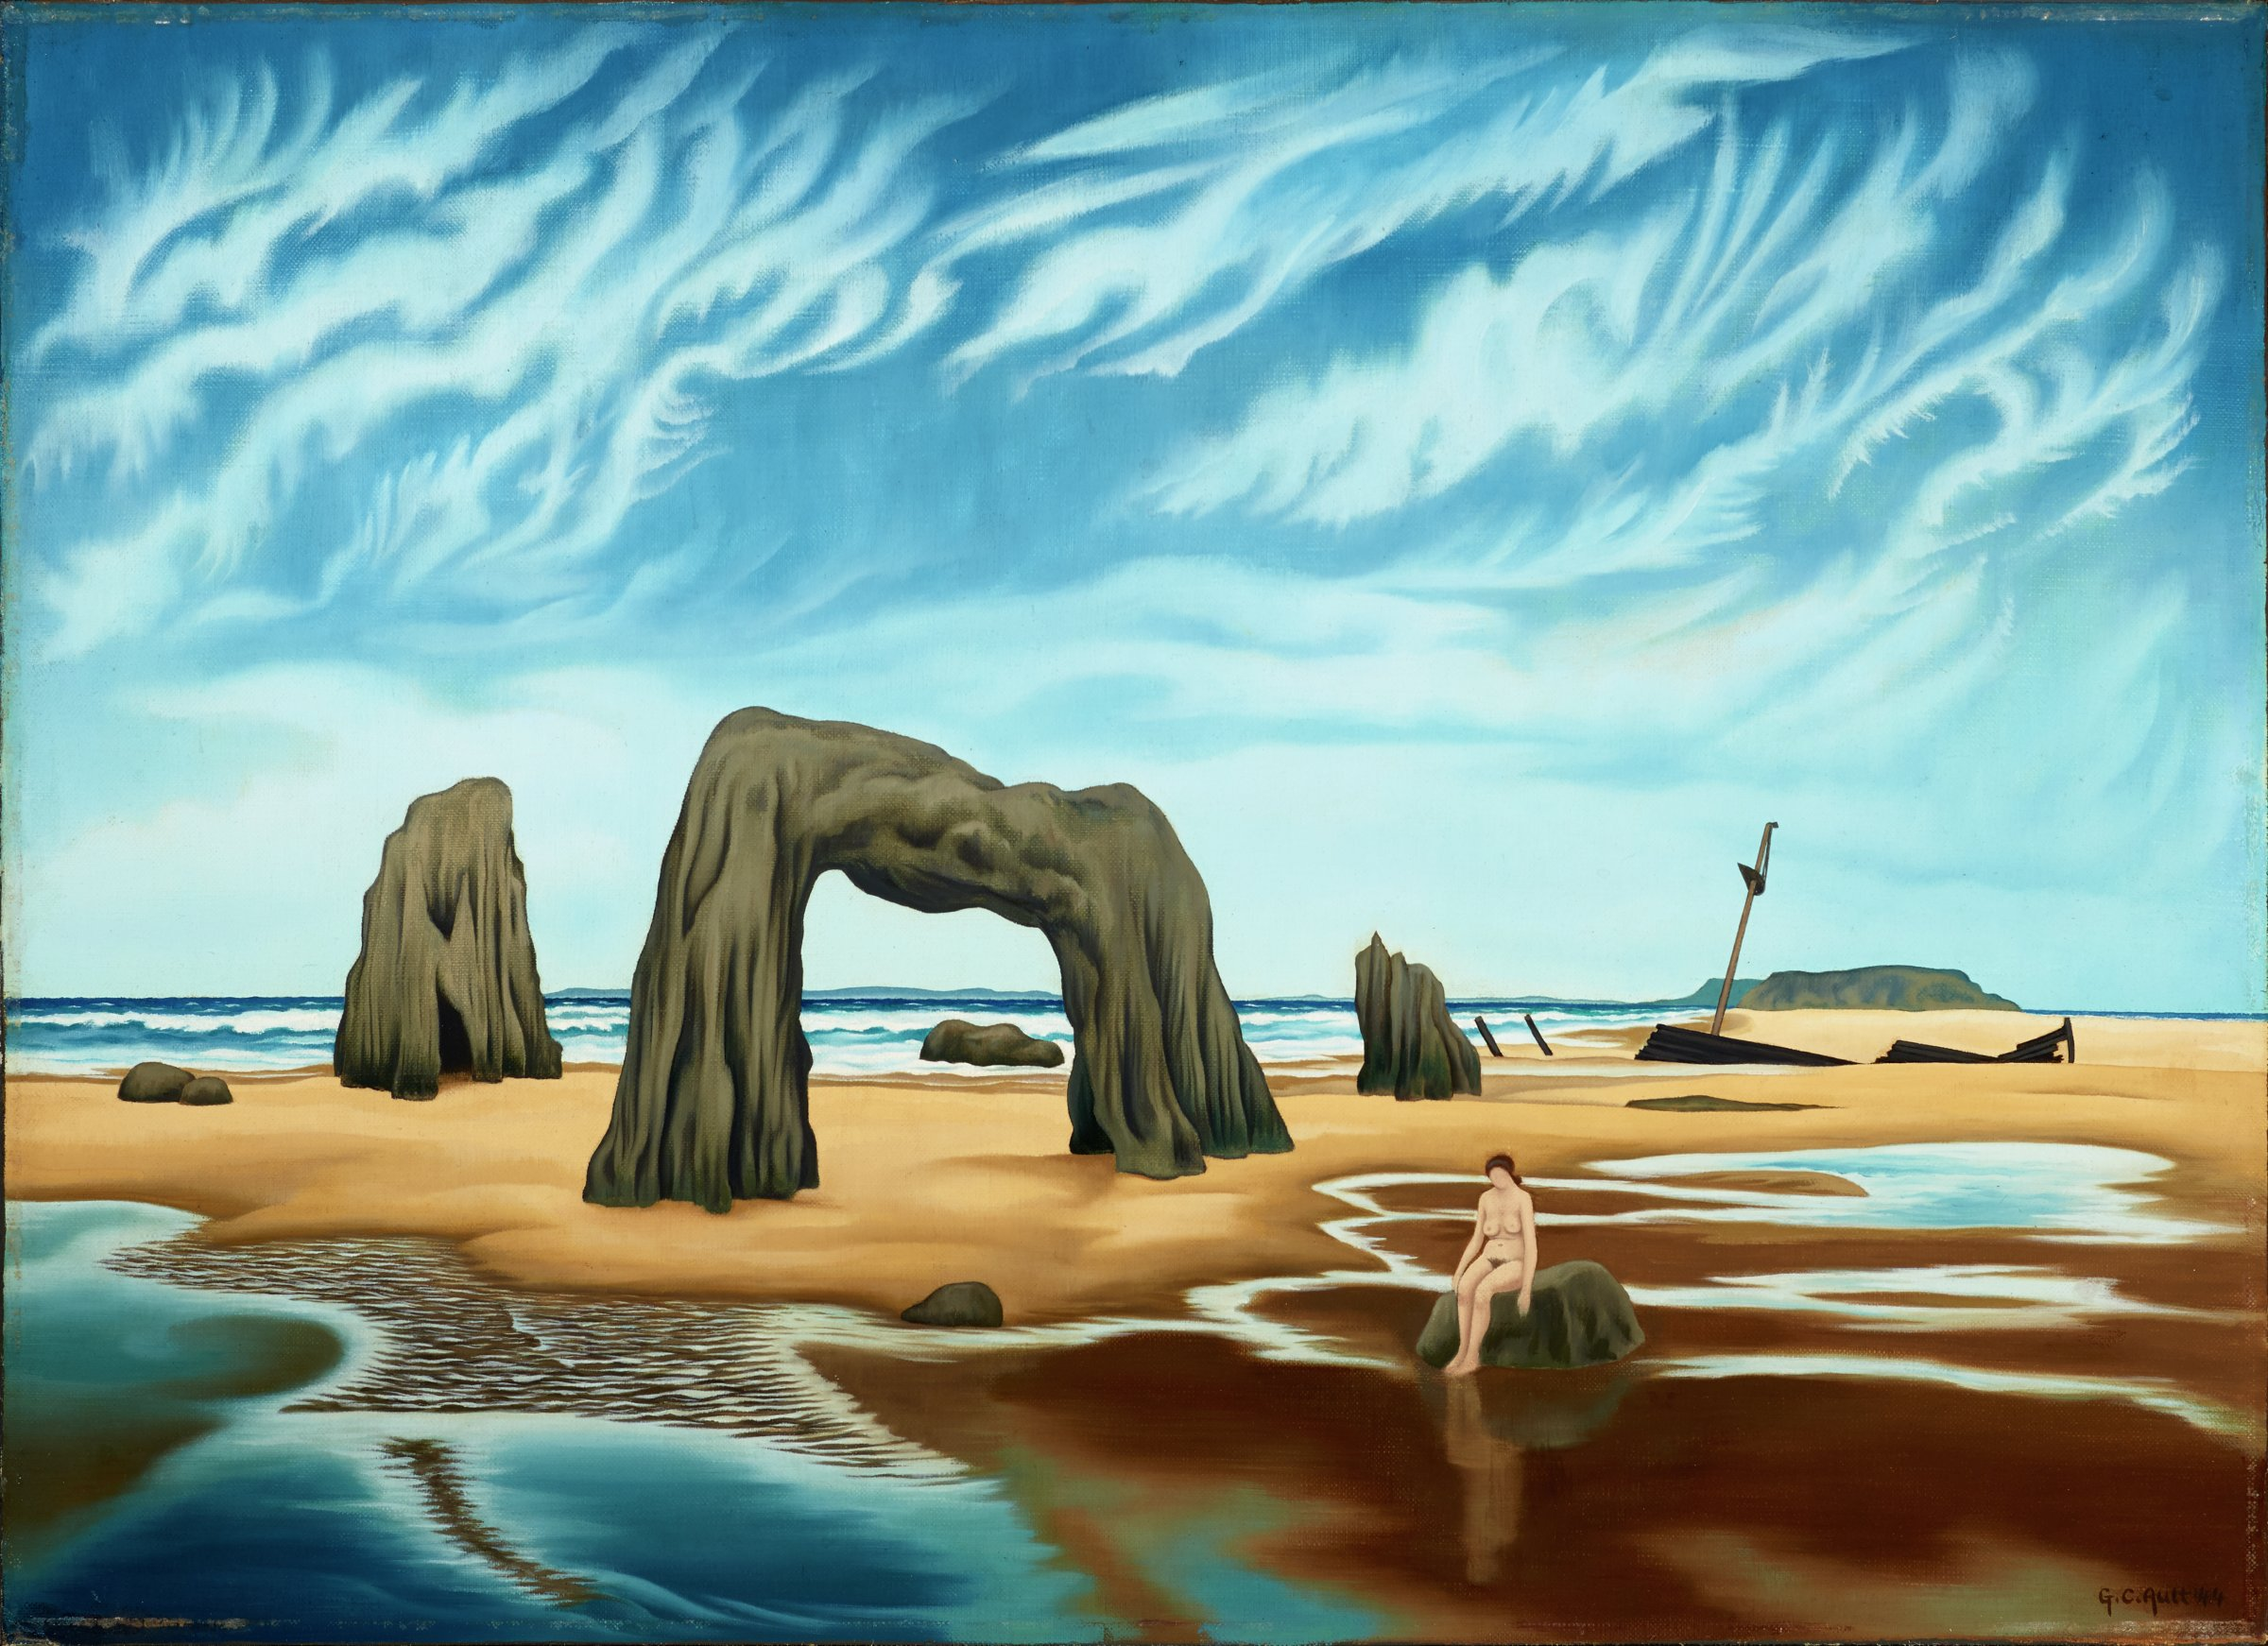 This painting represents a beach scene. Rocks stand on a sand bar in the middle ground, including a prominently placed arched rock at the center of the canvas. To the right of the arched rock, a woman sits on another rock within calm water and behind her appears to be the remains of a wrecked boat. Calm water spans the foreground of the painting, and distant waves are seen breaking on the ocean in the b ackground. Above the scene is a blue sky filled with distinct clouds. Touches of brown-yellow paint are also in the sky.